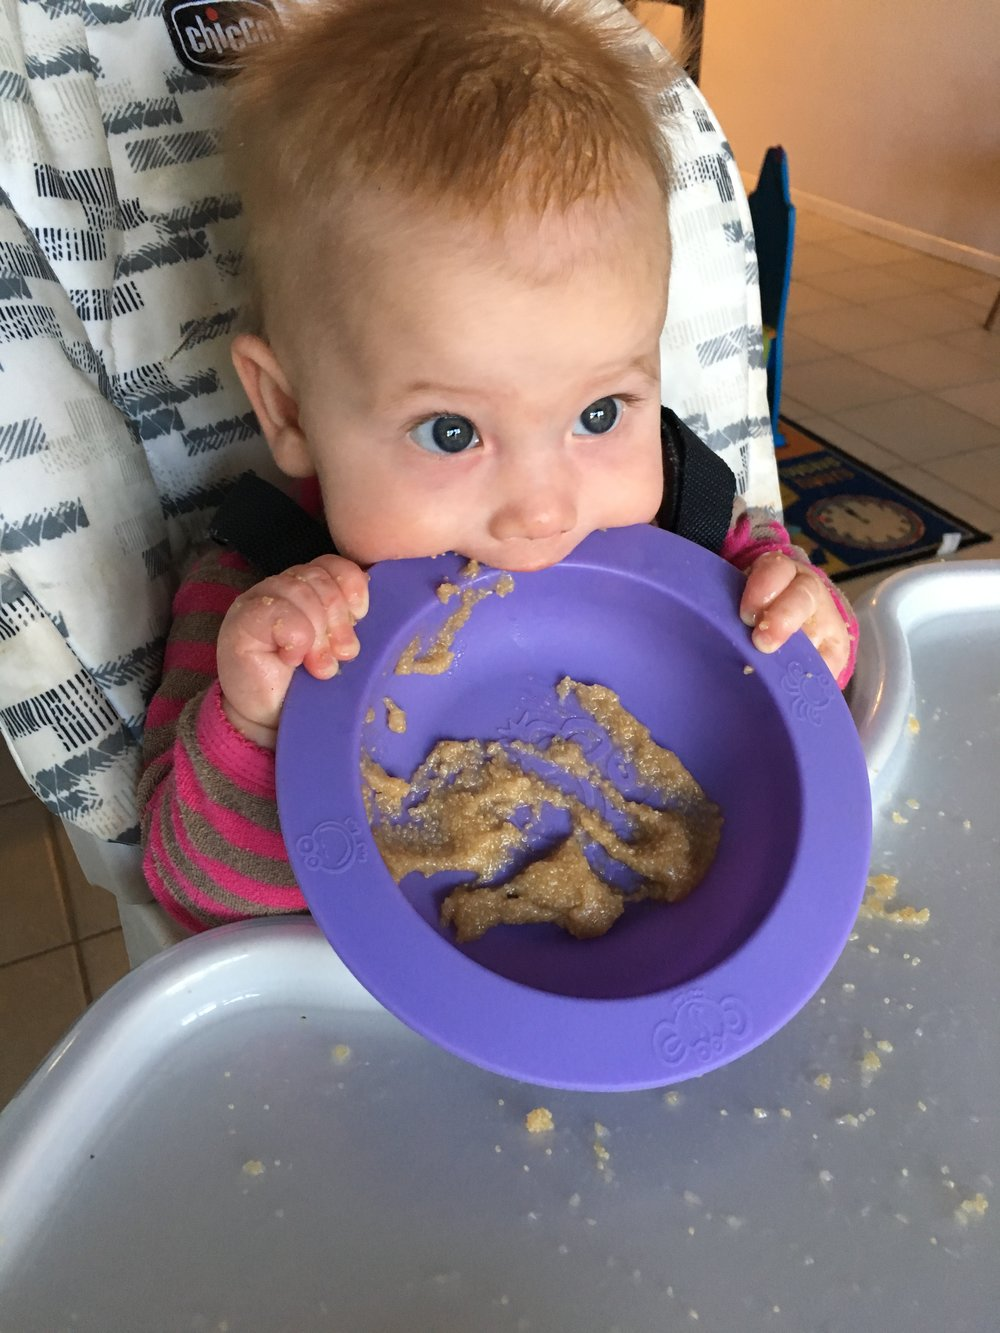 My 6 month old daughter loved her amaranth porridge (and the bowl!)